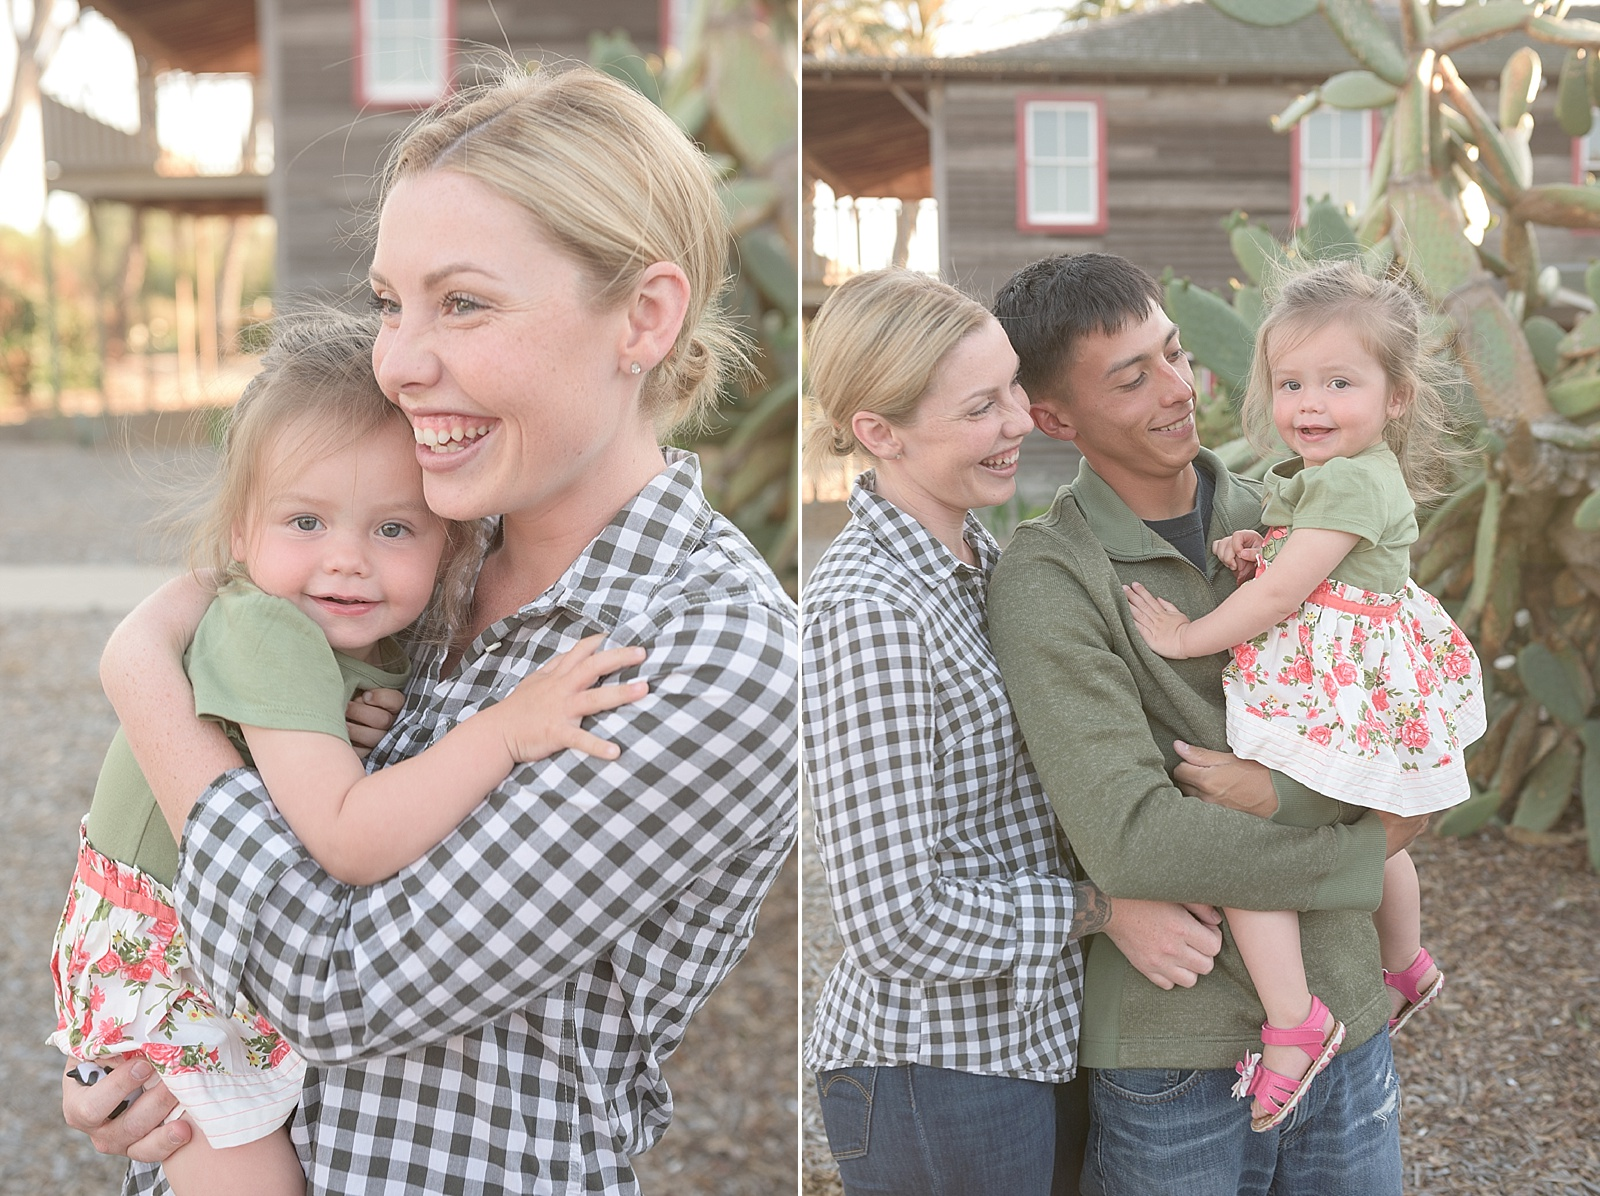 Rustic farm house family photo session from North Carolina family portrait photographer Lauren Nygard